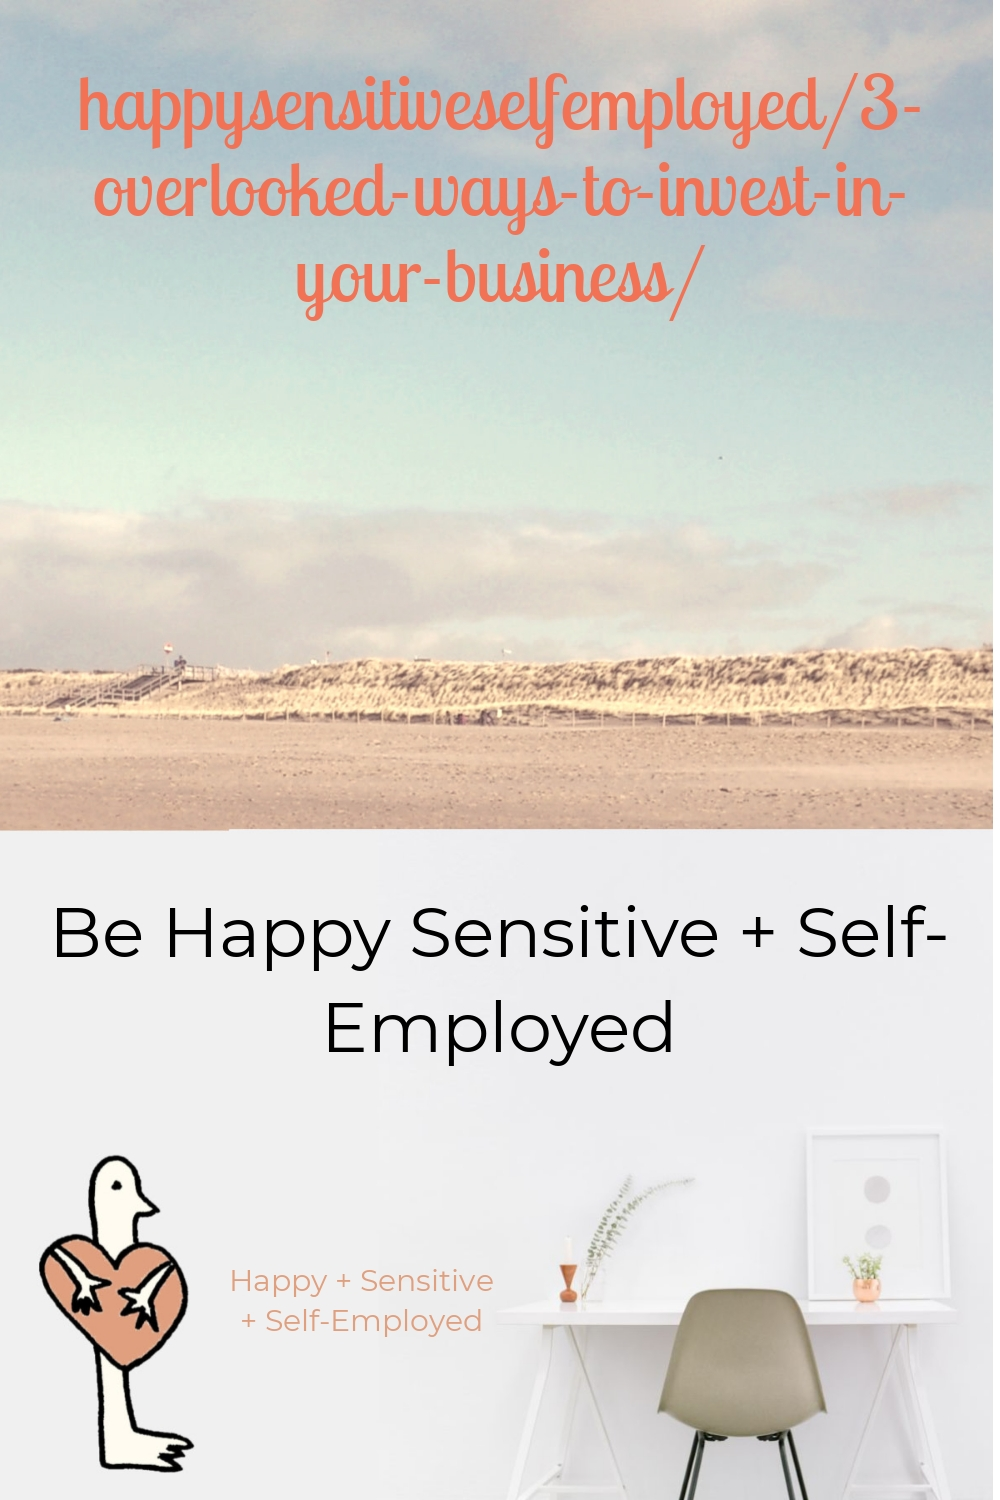 happysensitiveselfemployed/3-overlooked-ways-to-invest-in-your-business/